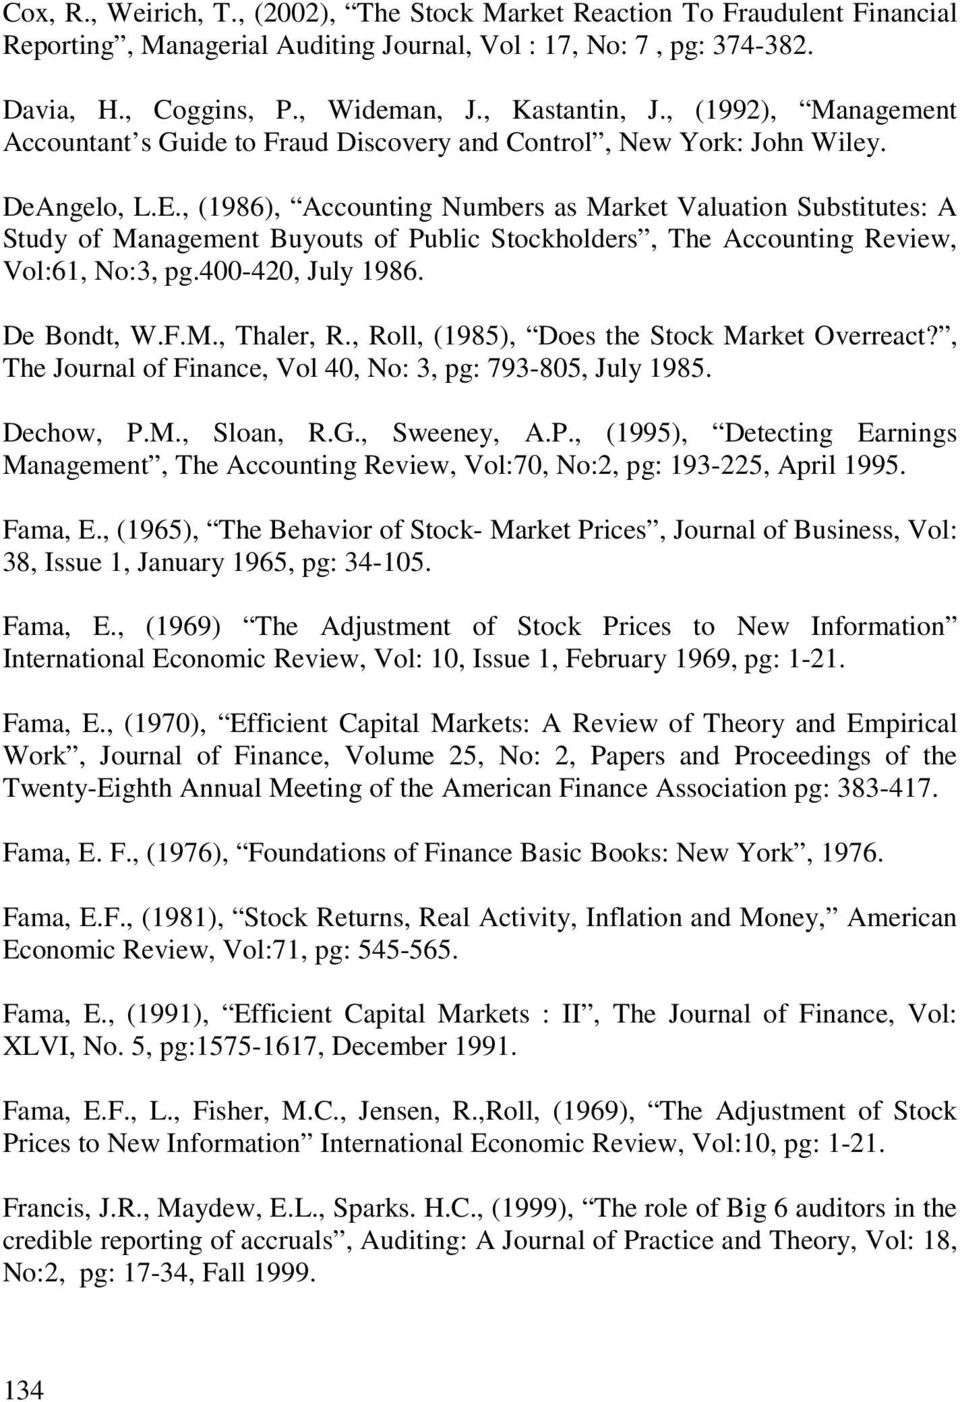 , (1986), Accounting Numbers as Market Valuation Substitutes: A Study of Management Buyouts of Public Stockholders, The Accounting Review, Vol:61, No:3, pg.400-420, July 1986. De Bondt, W.F.M., Thaler, R.